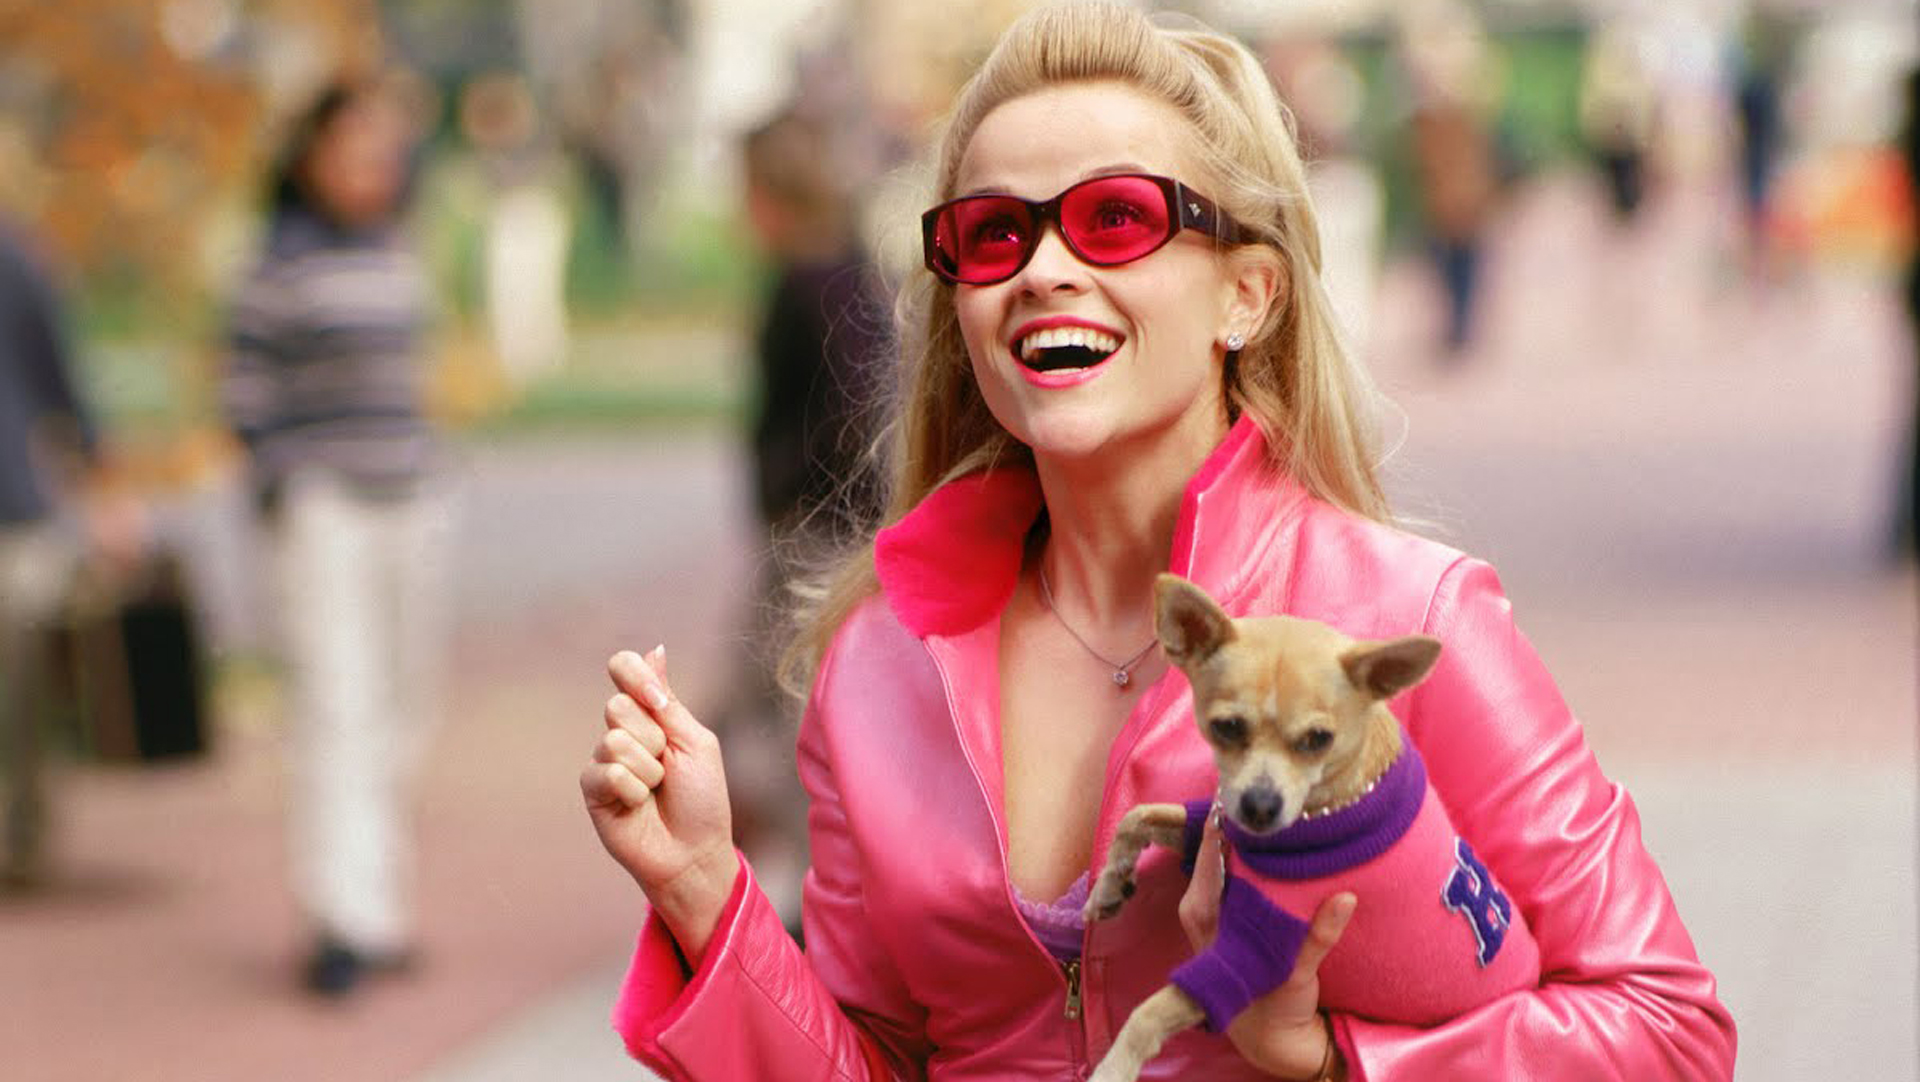 Legally blonde reese witherspoon as elle woods